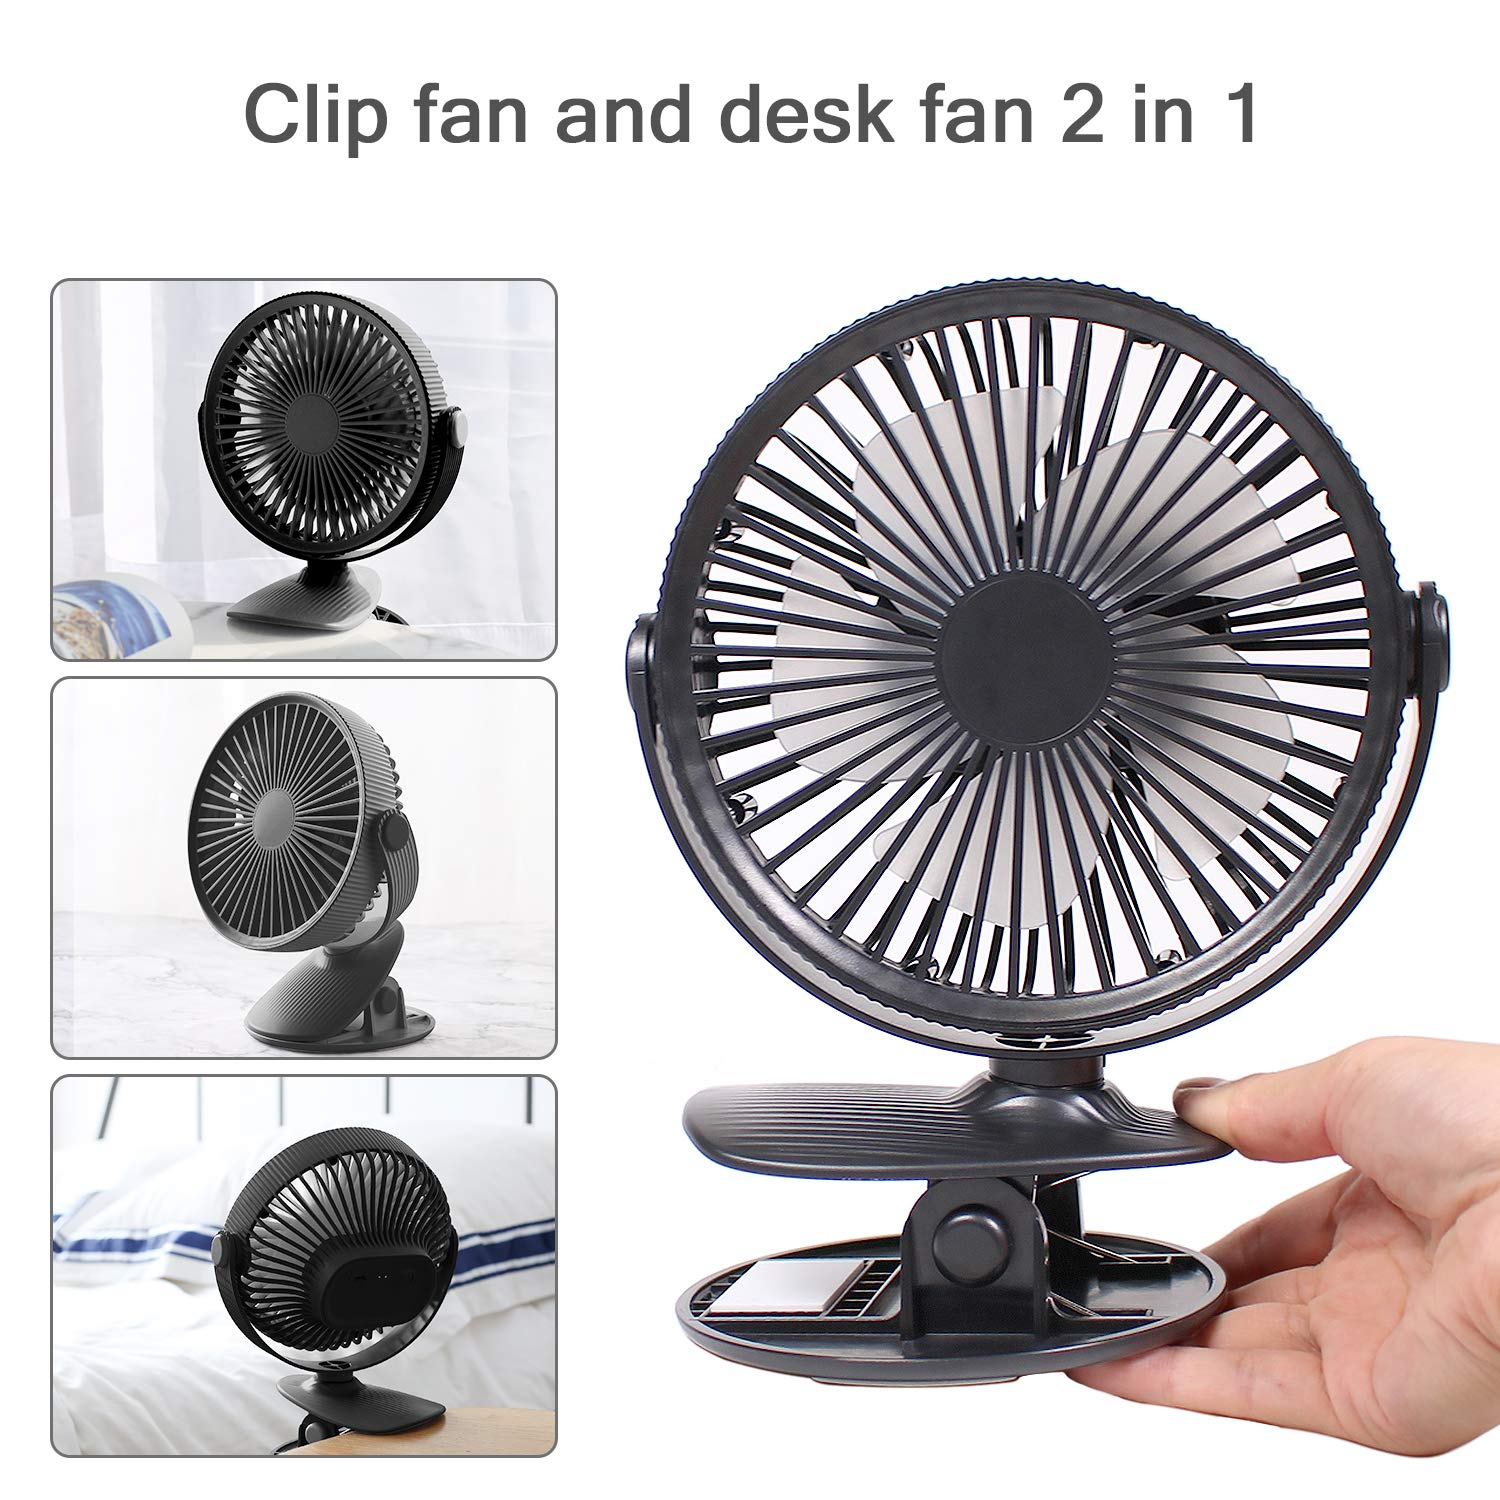 MADETEC Small Desk Clip Fan, Battery Operated Oscillating Fan Mini USB Portable Personal Cooling Fan for Stroller Home Office Bedroom Outdoor